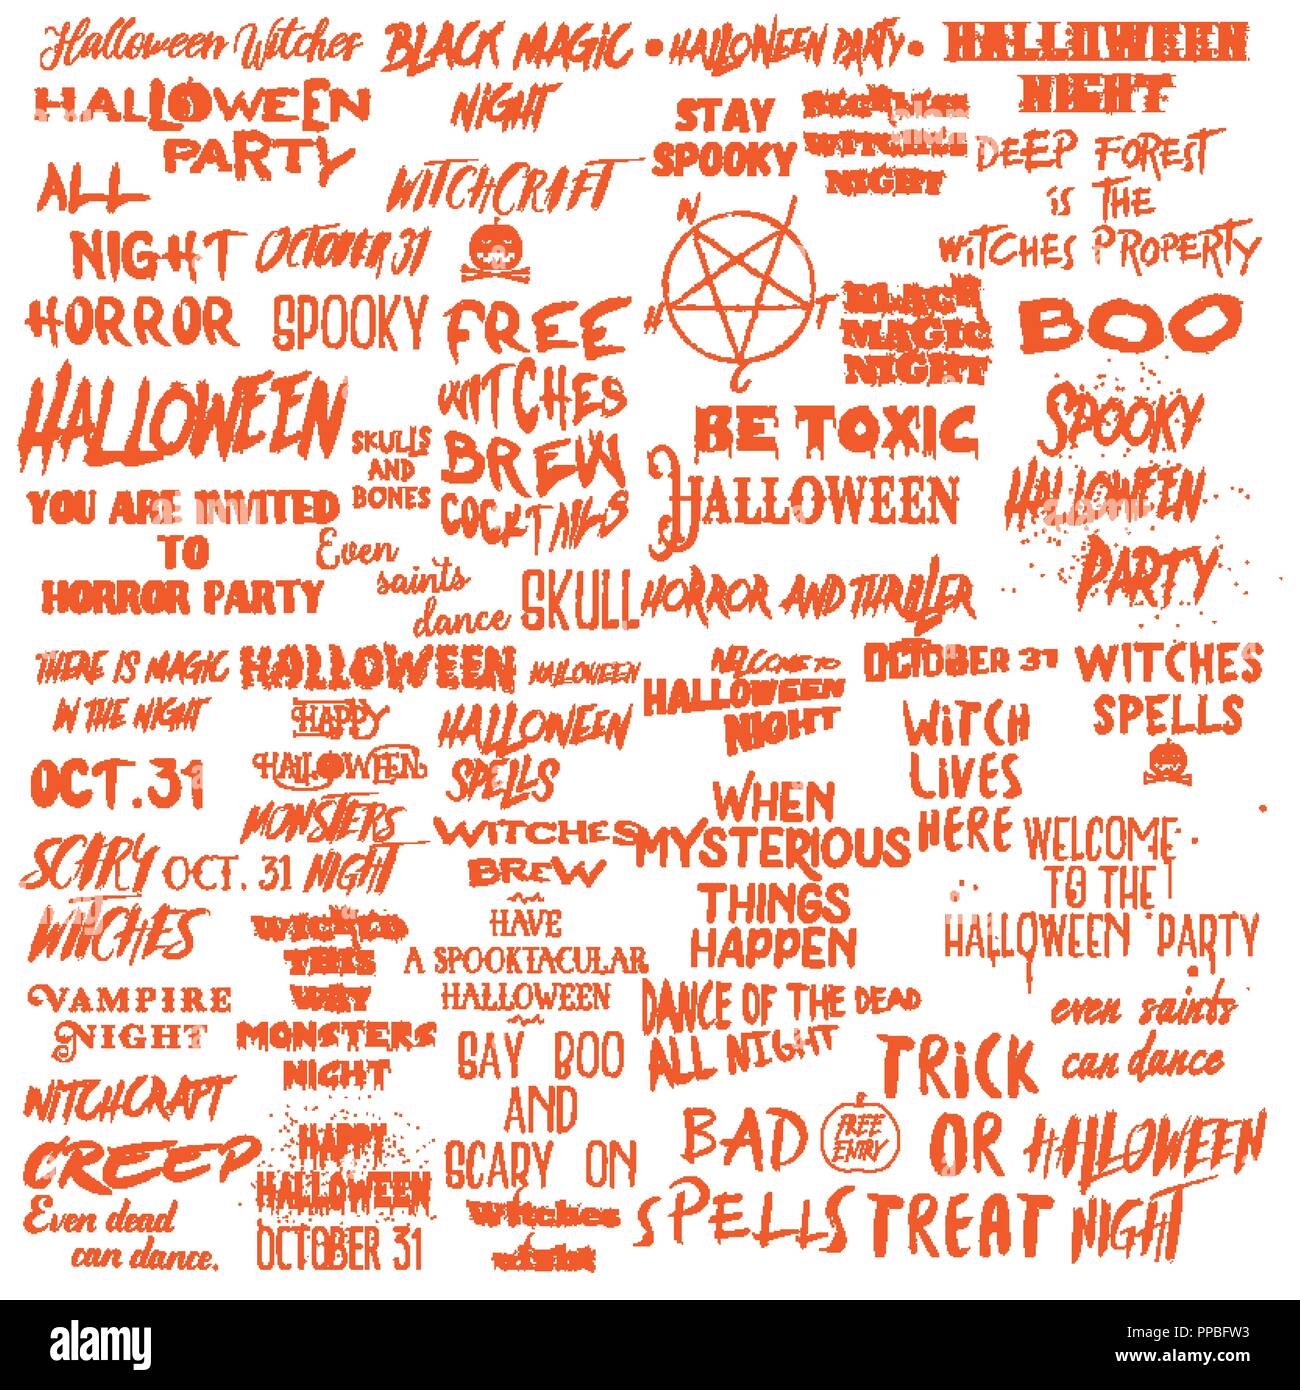 Halloween Phrases.Set Of Halloween Quotes For Posters About Halloween Party And Scary Phrases For Greeting Card Printable Wall Art Designs And Flyers Different Font Ca Stock Vector Image Art Alamy